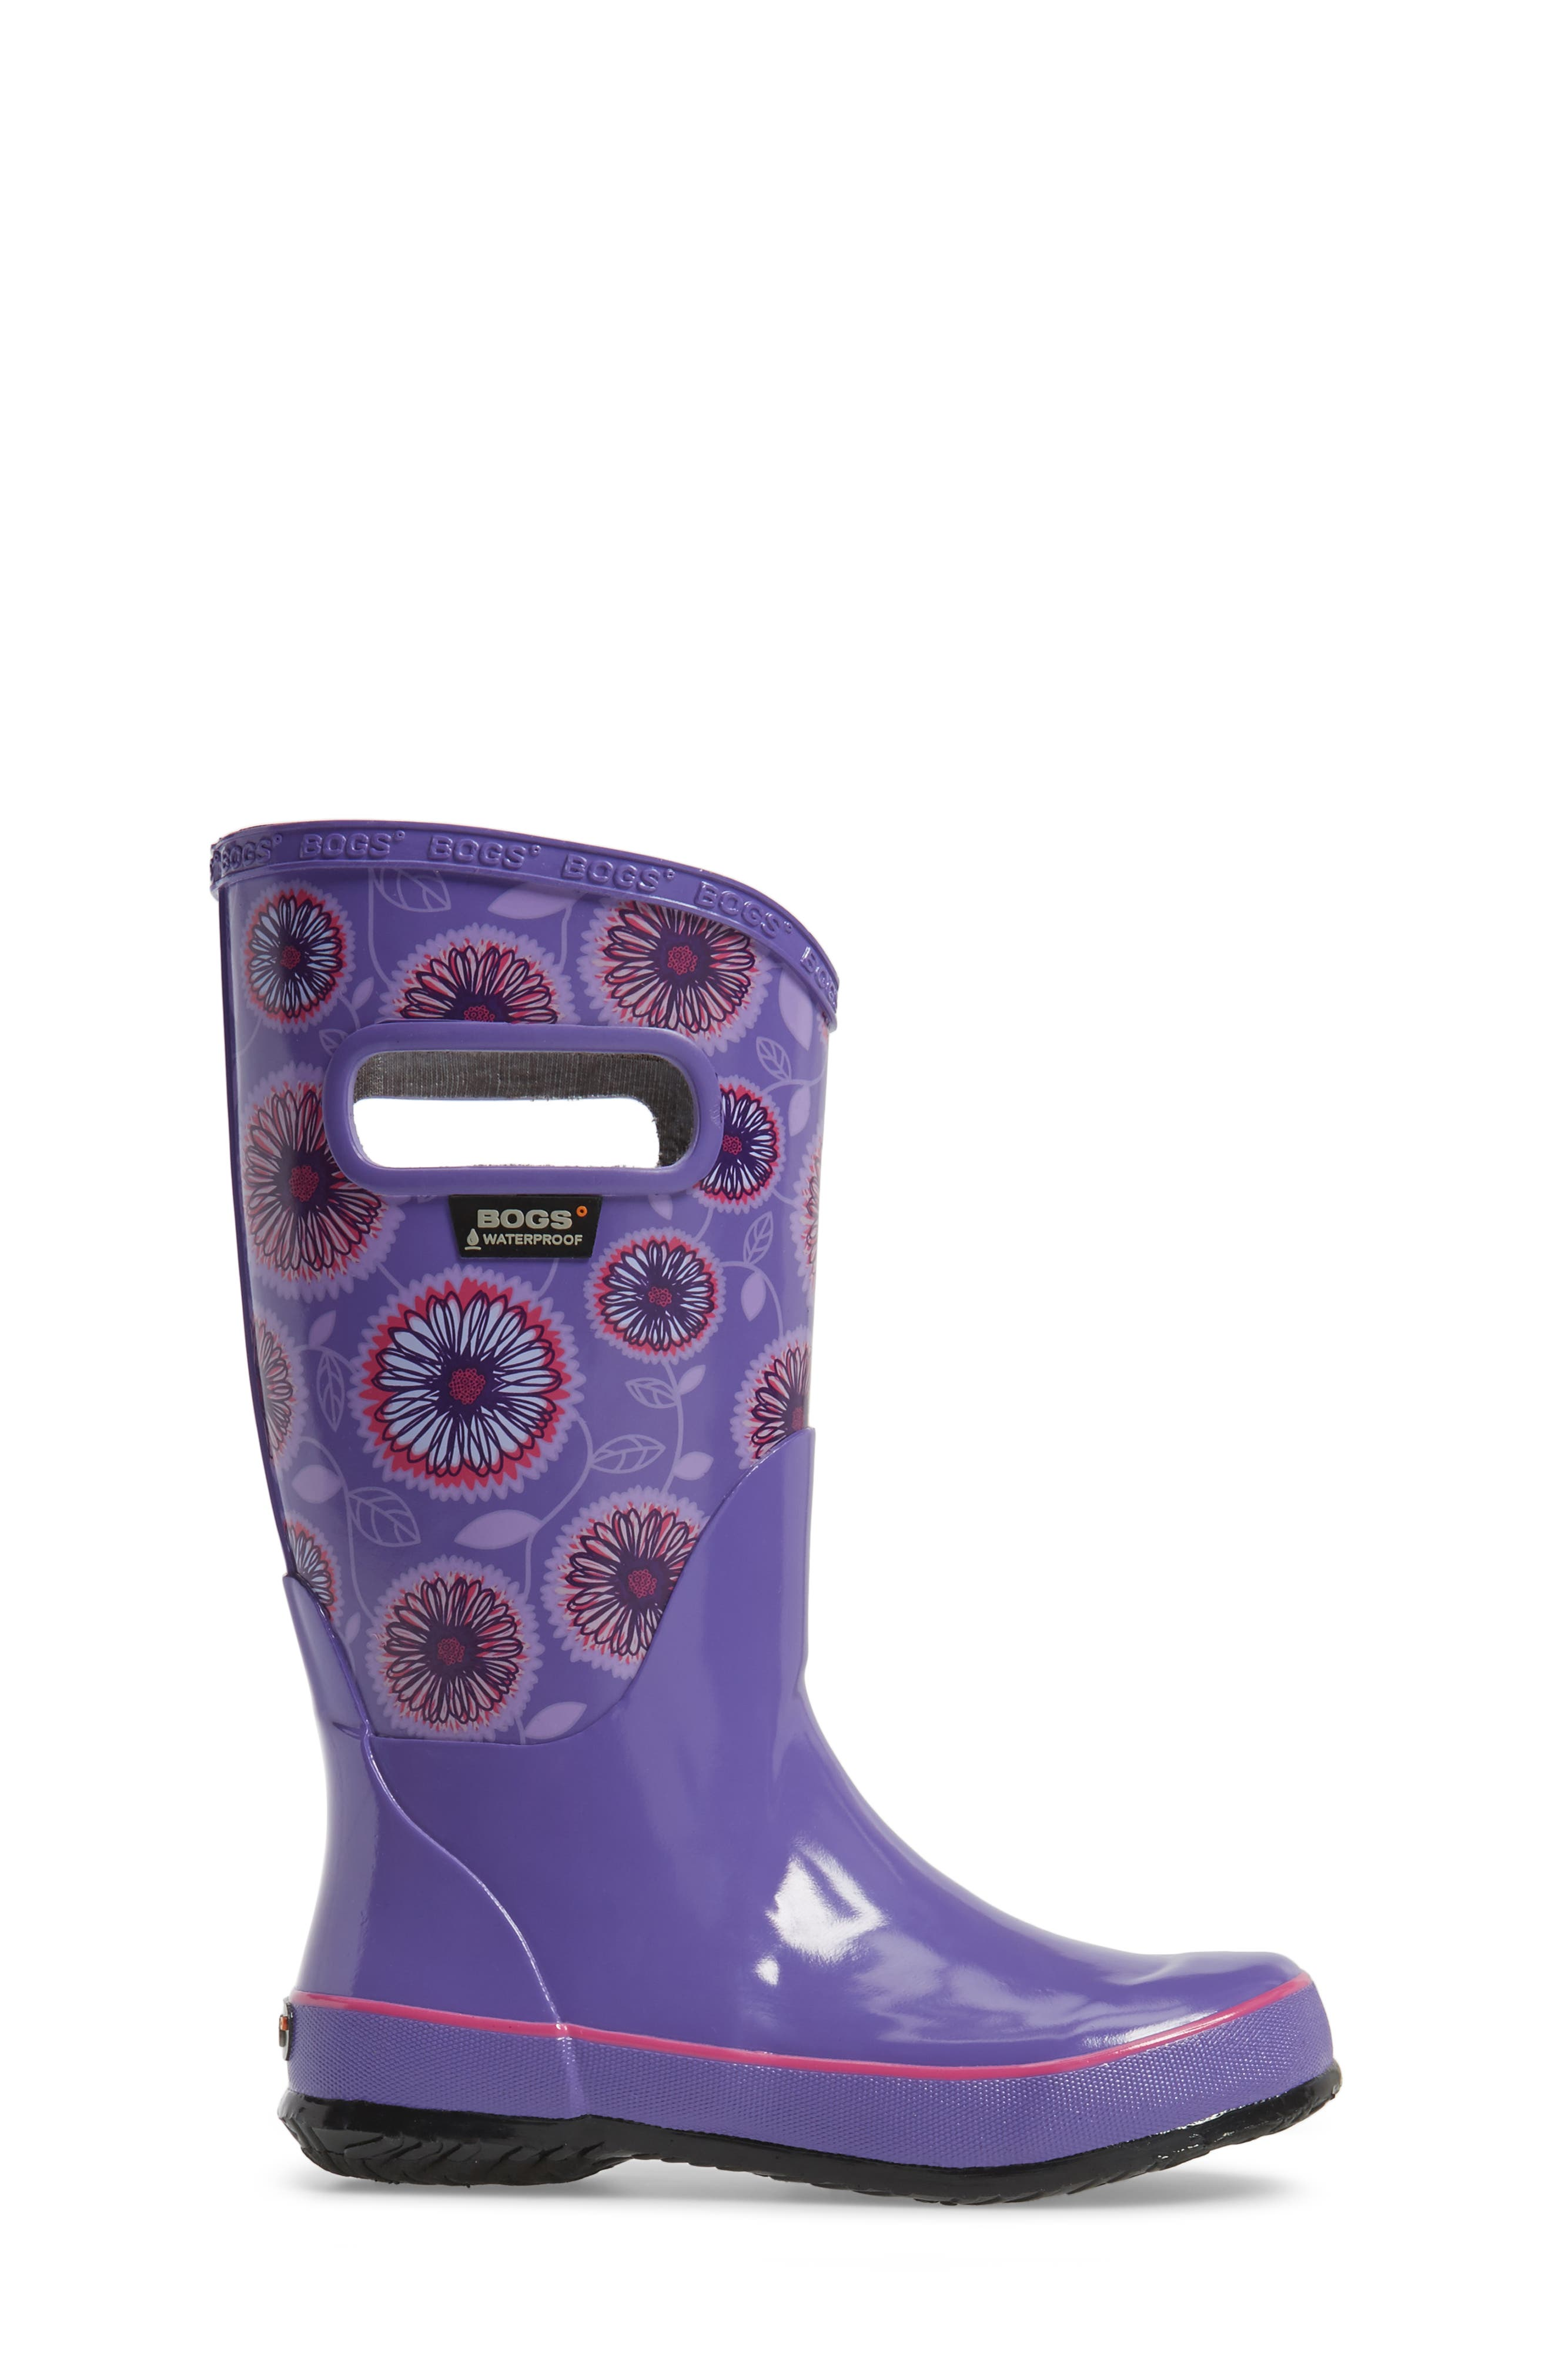 Wildflowers Rubber Rain Boot,                             Alternate thumbnail 3, color,                             Violet Multi